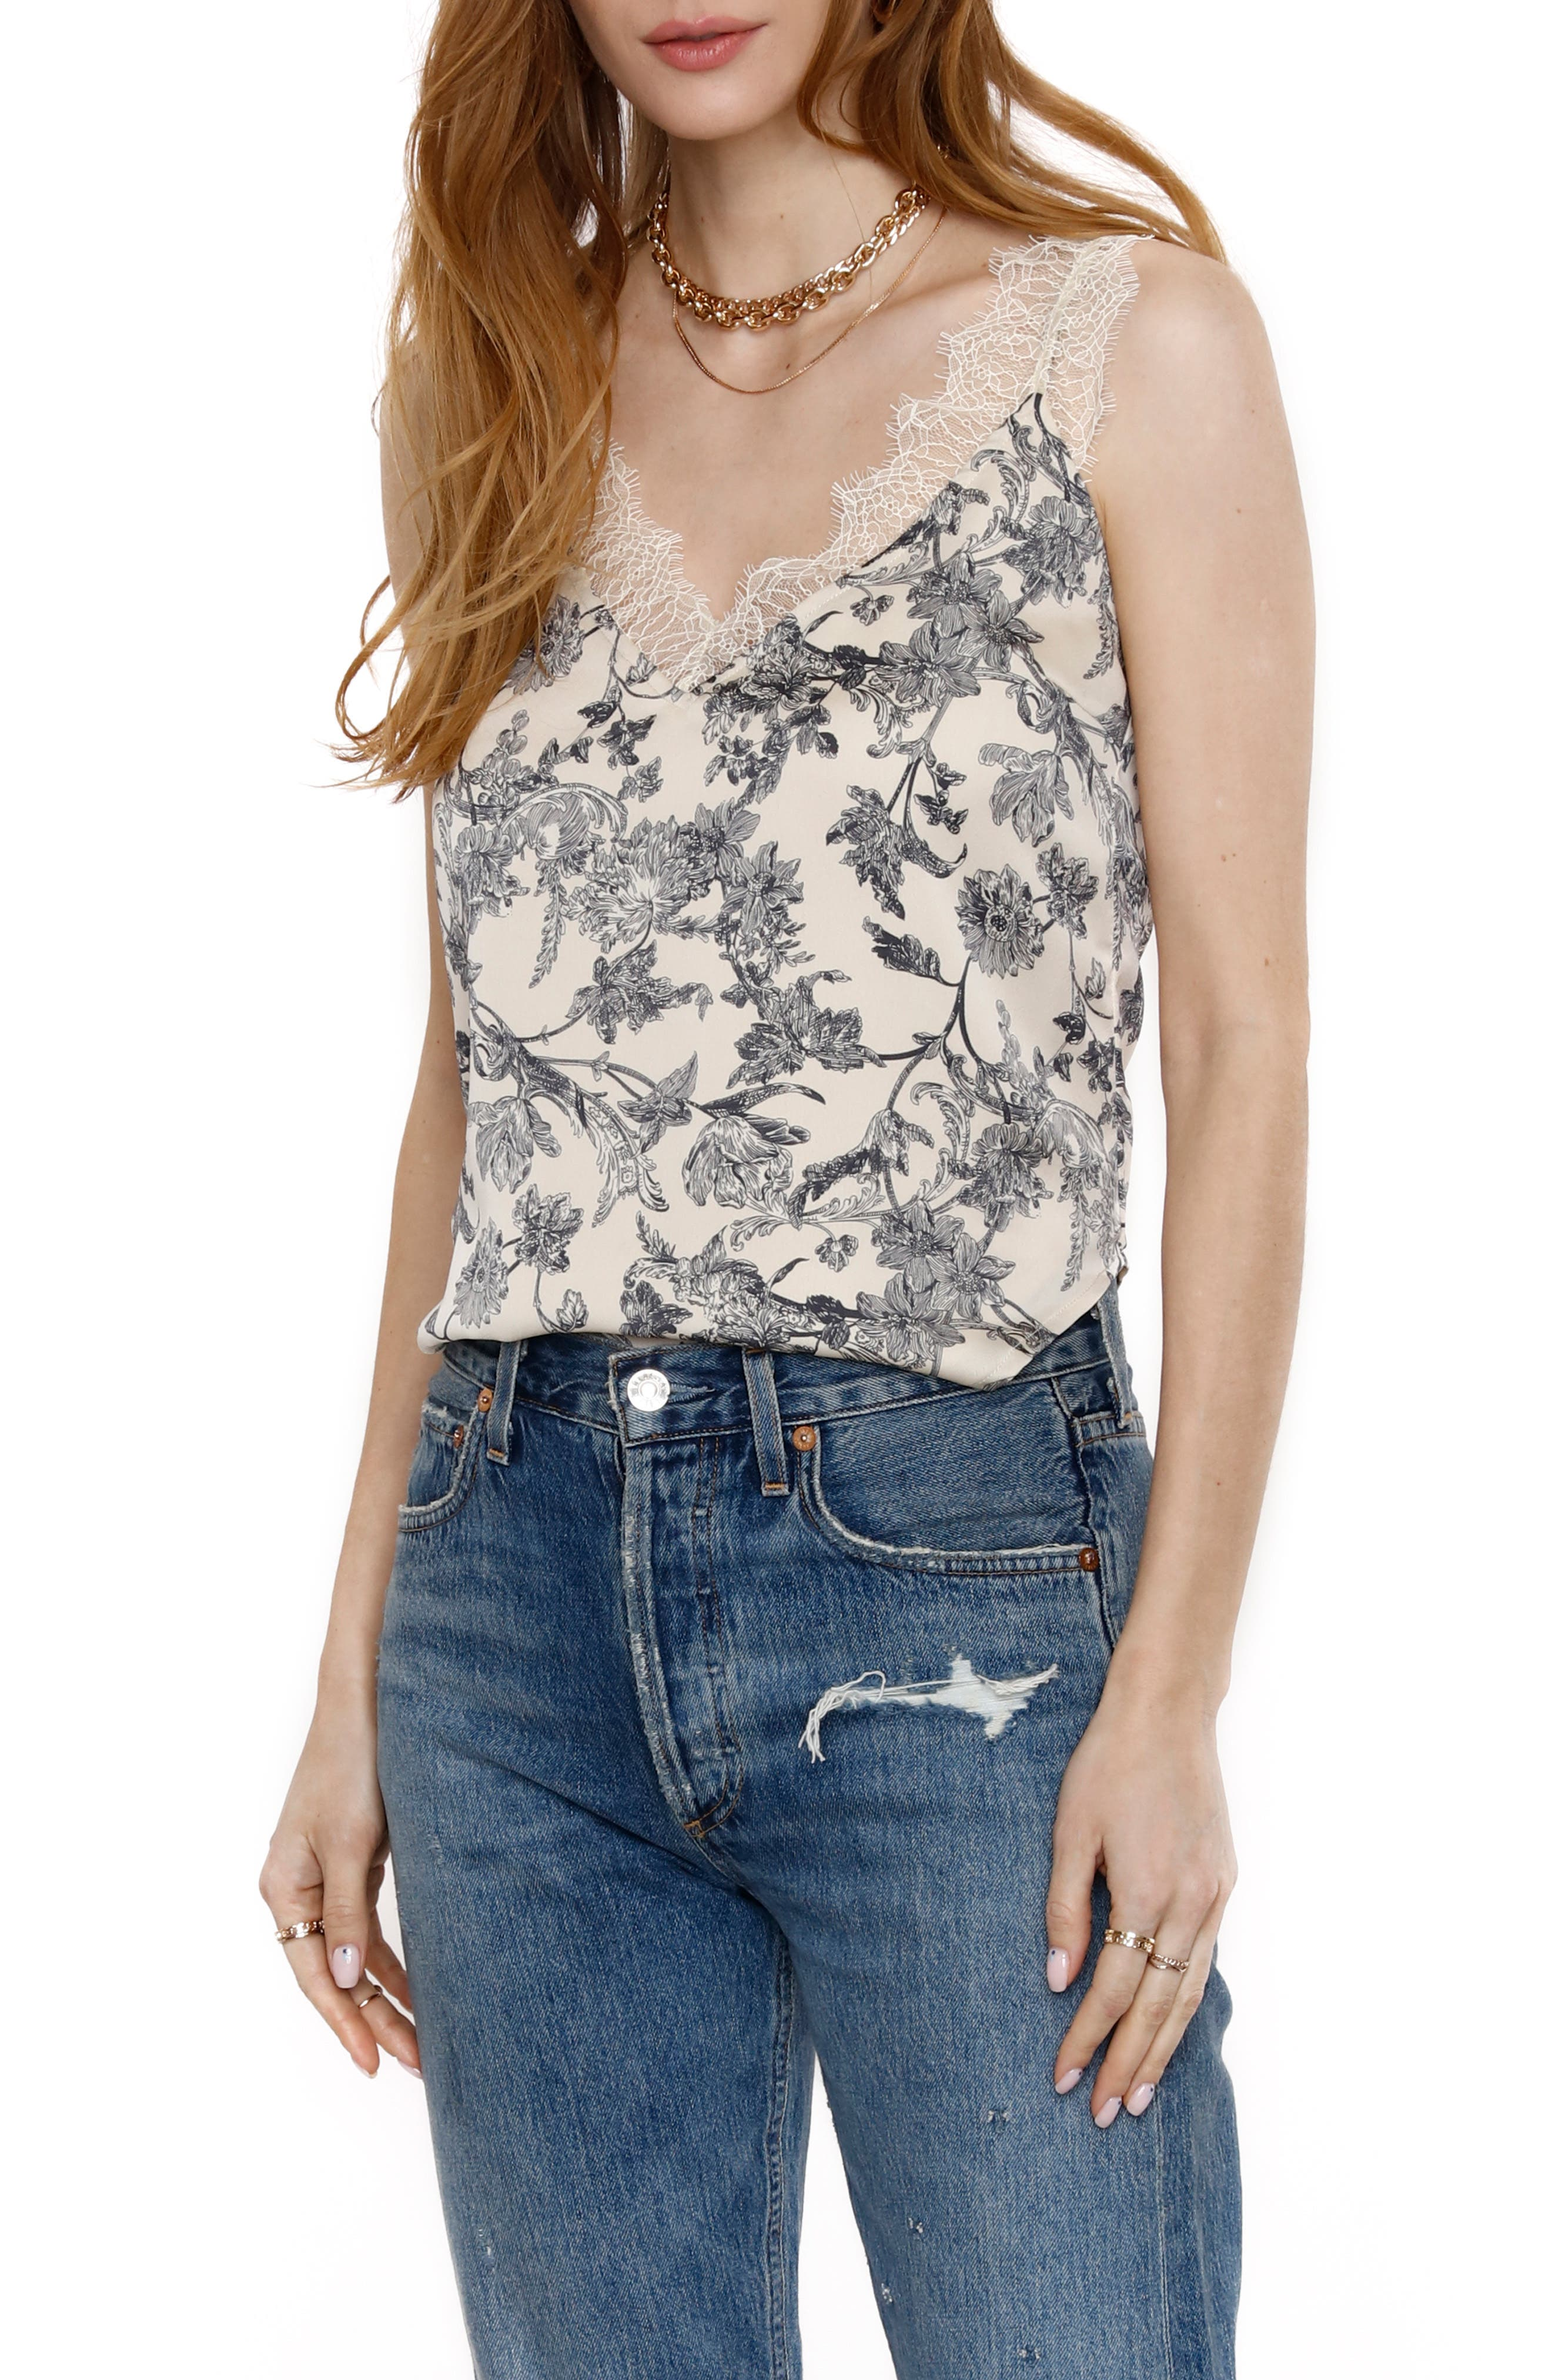 Toile Lace Neck Tank Top